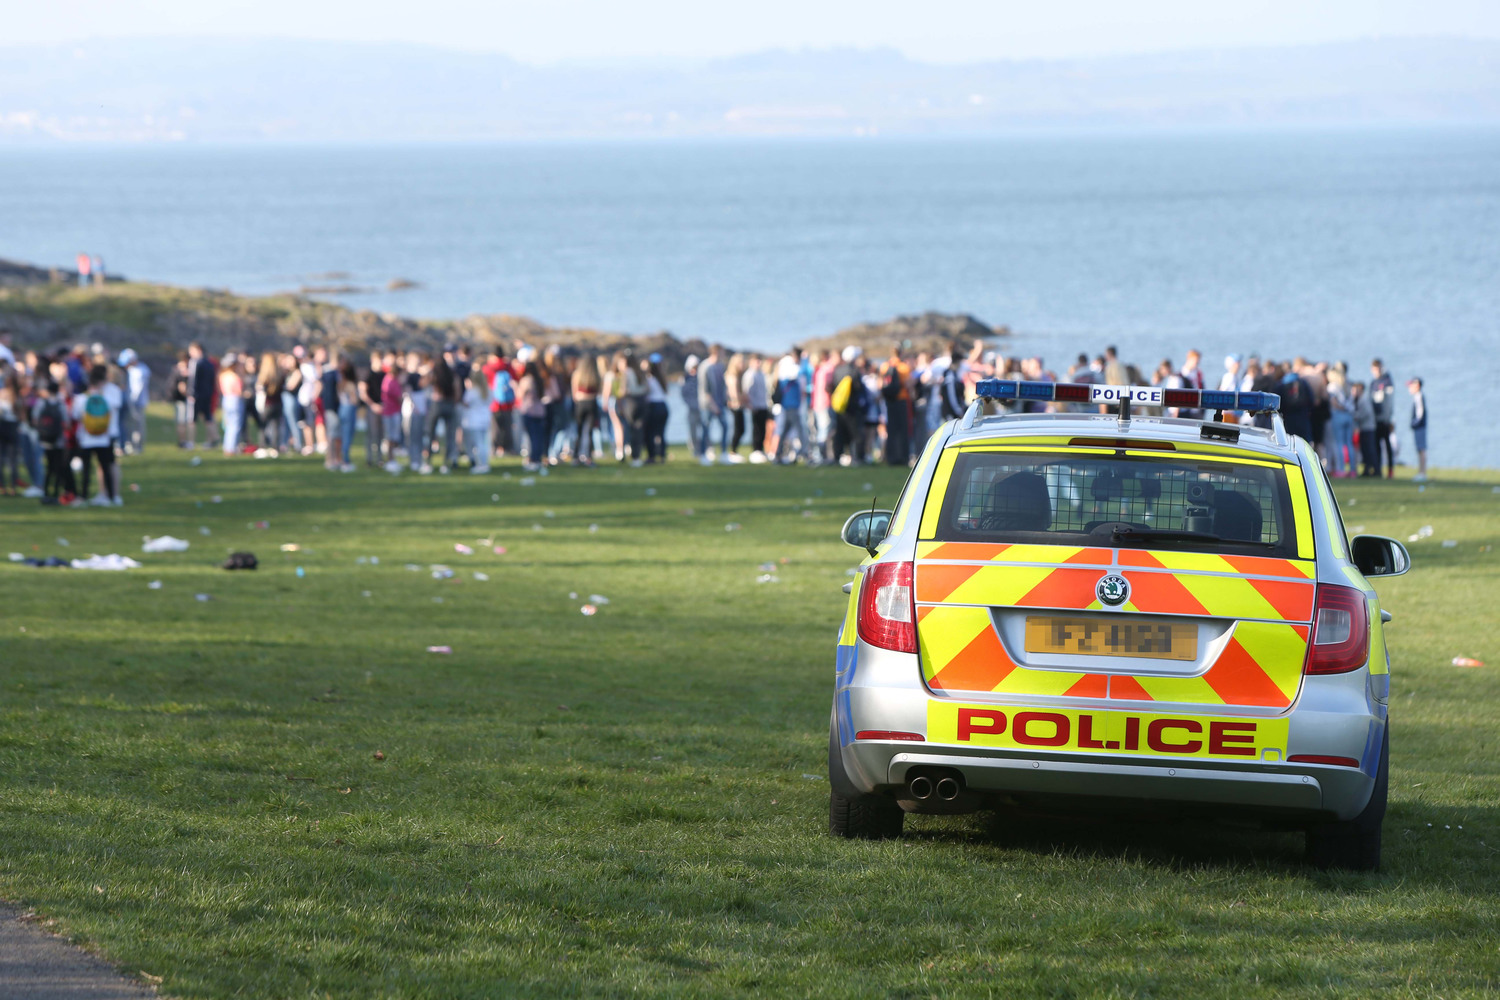 Police respond to reports of underage drinking in Crawfordsburn Park in 2015. Picture credit Press Eye.